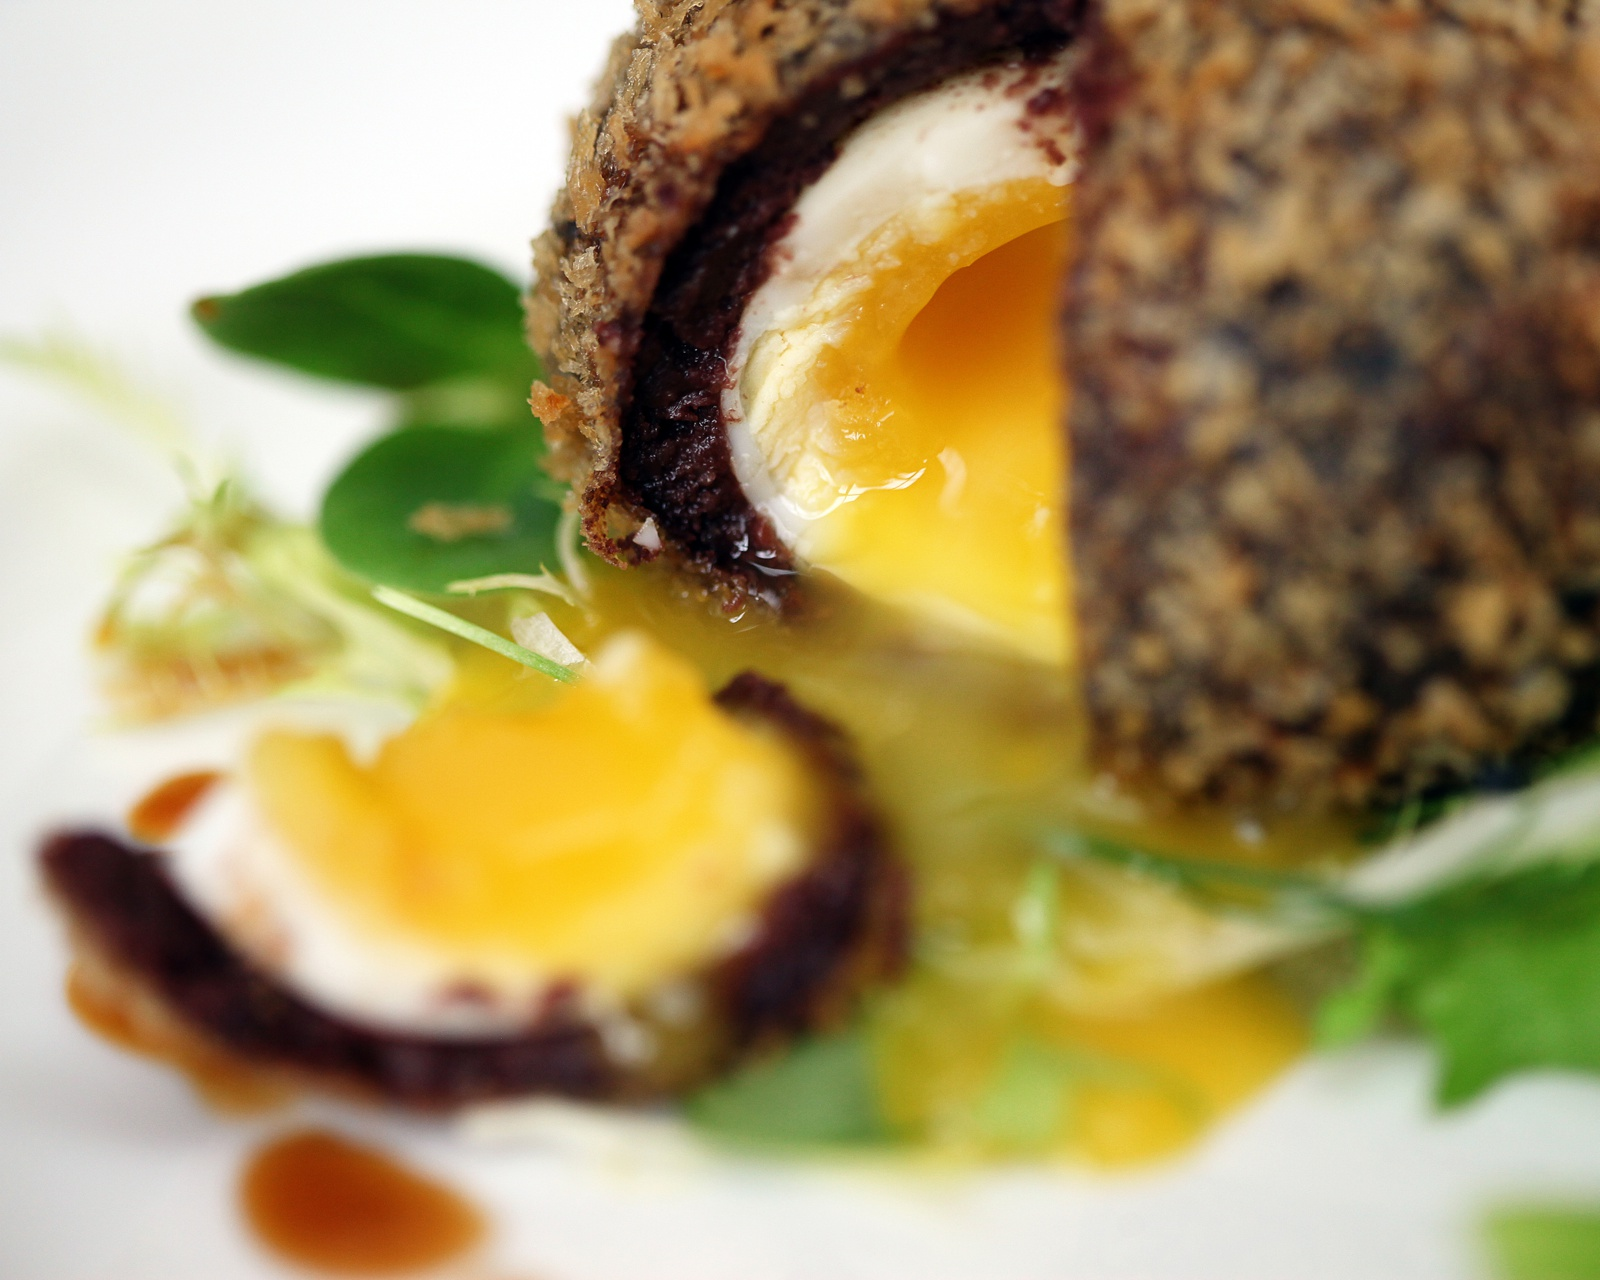 Colour photo of scotch egg dish prepared at Wasing Park Estate